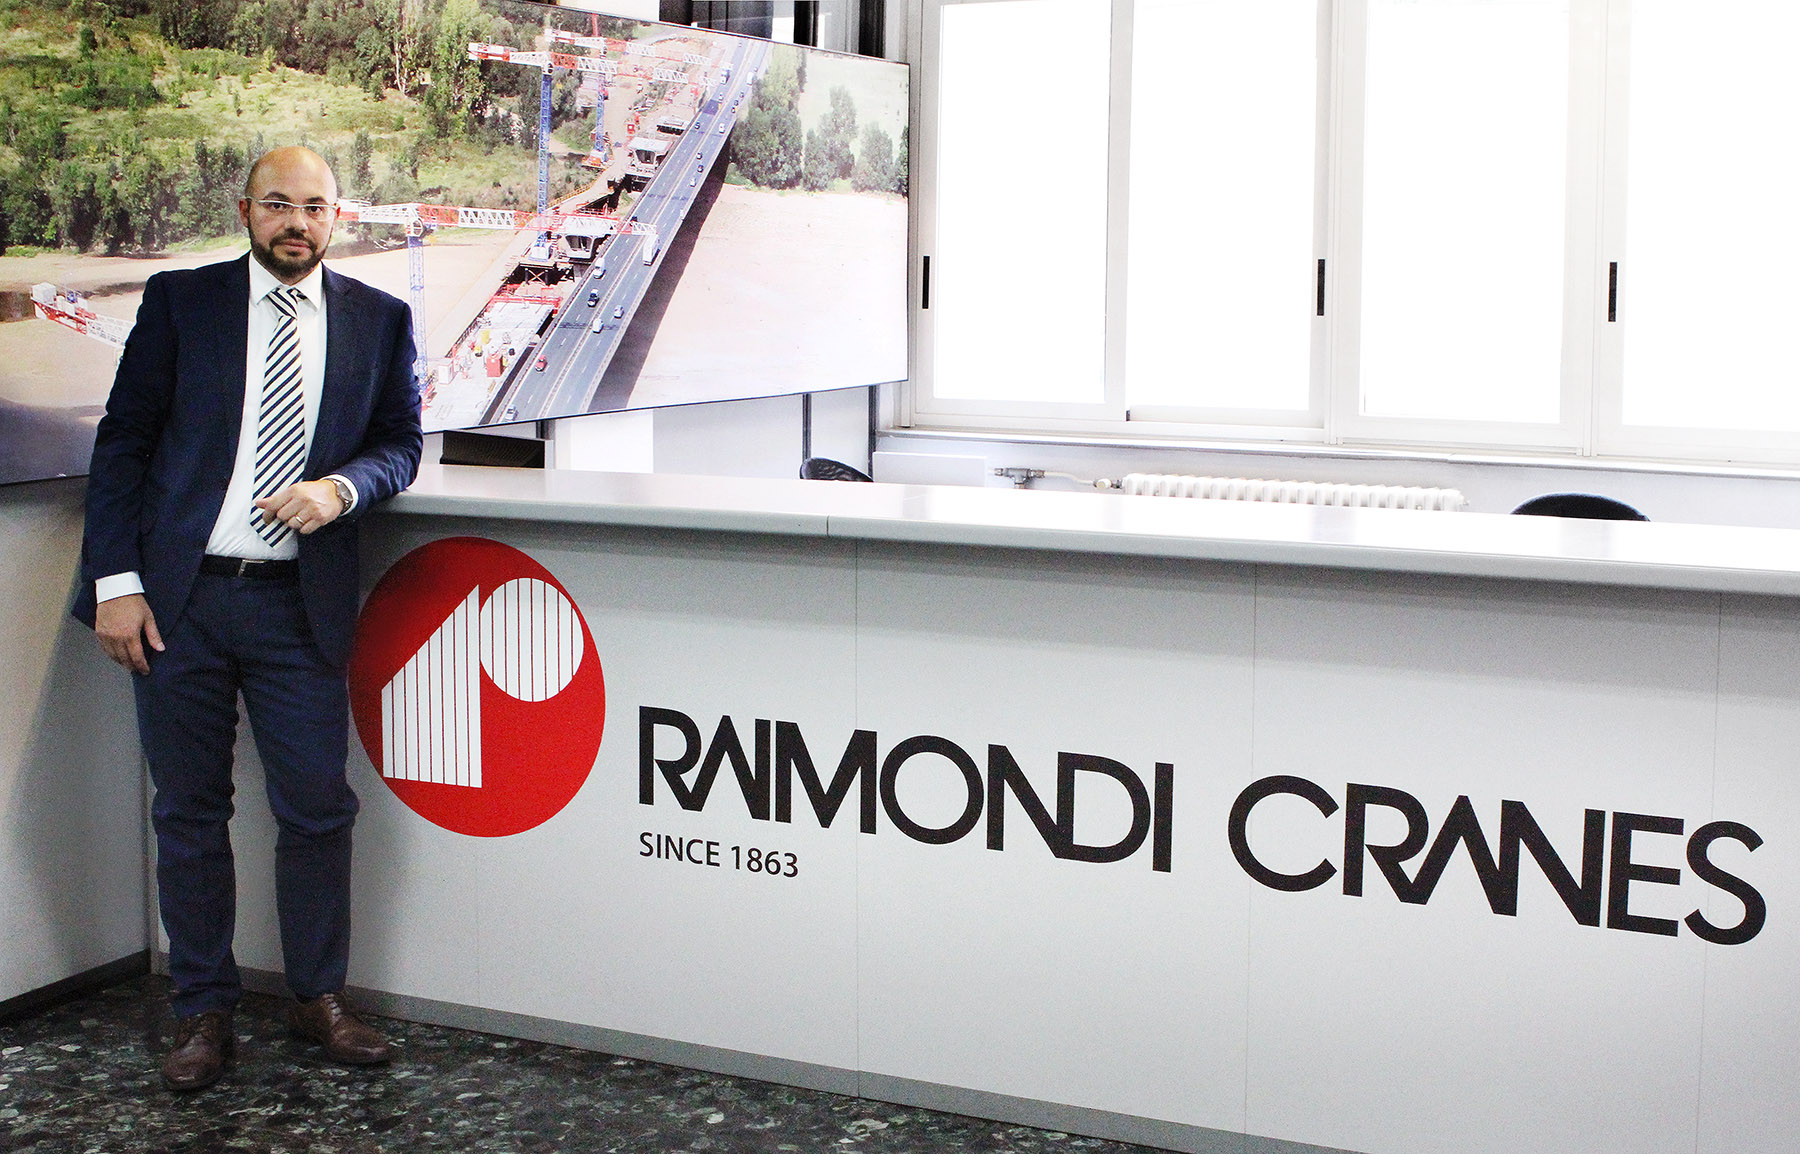 Eng. Domenico Ciano, Technical Director, Raimondi Cranes